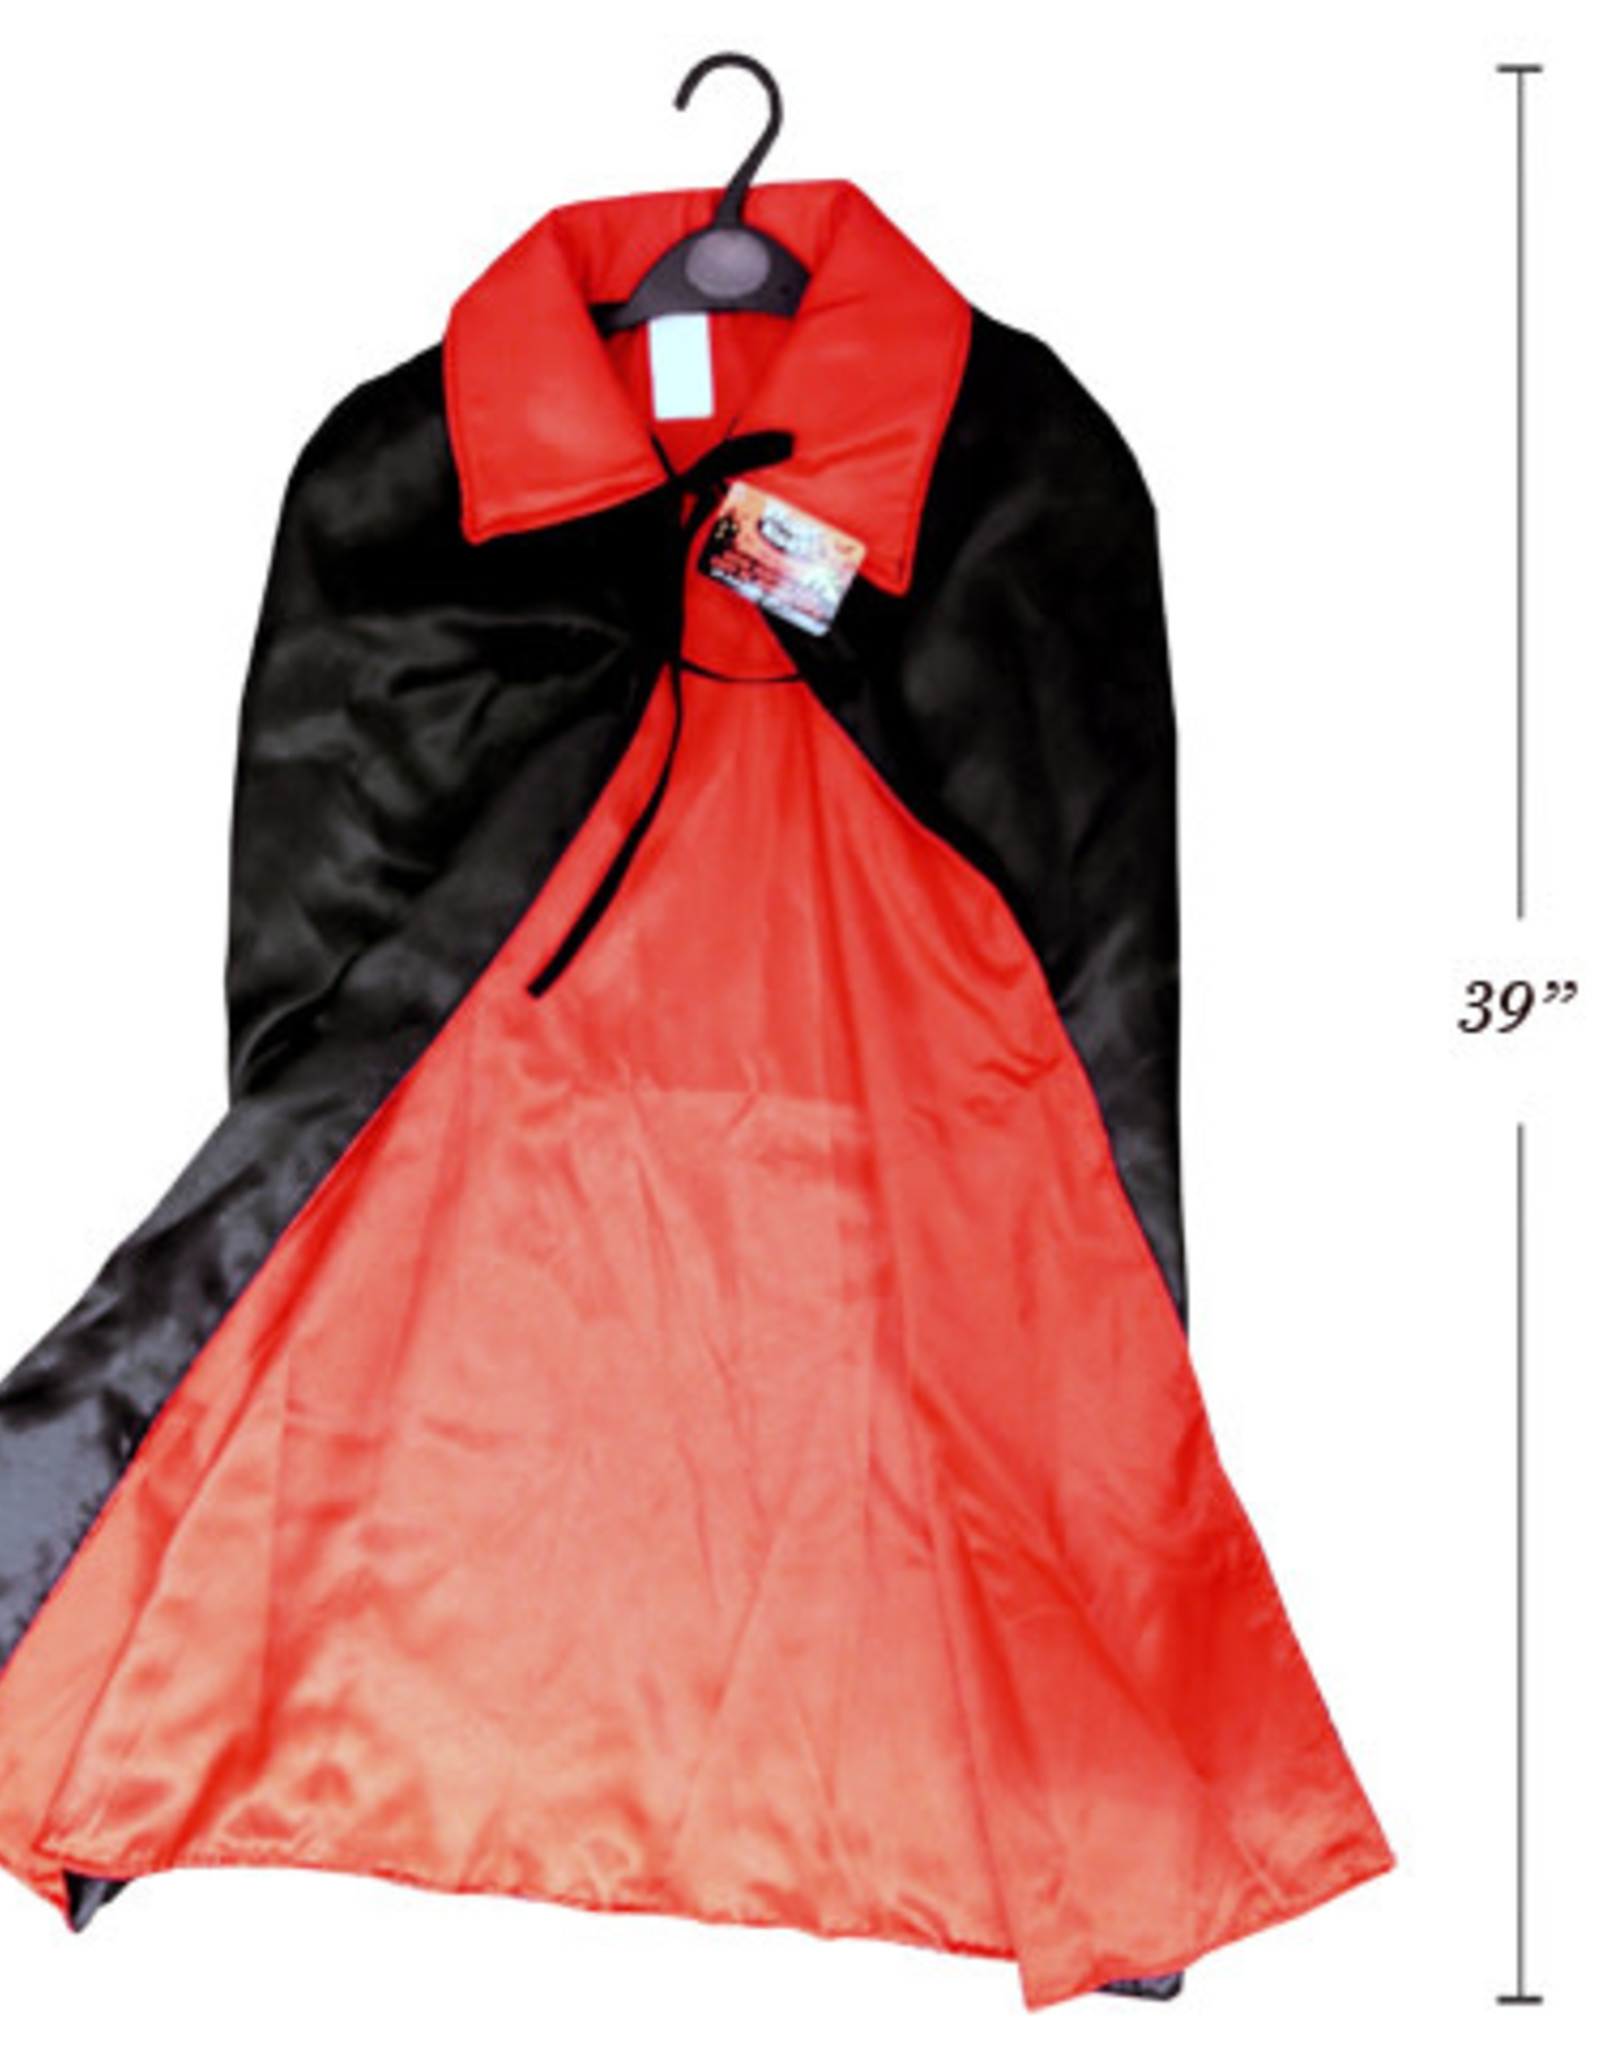 39 Inch Deluxe Satin Vampire Cape with 4.5 Inch Stand Up Collar